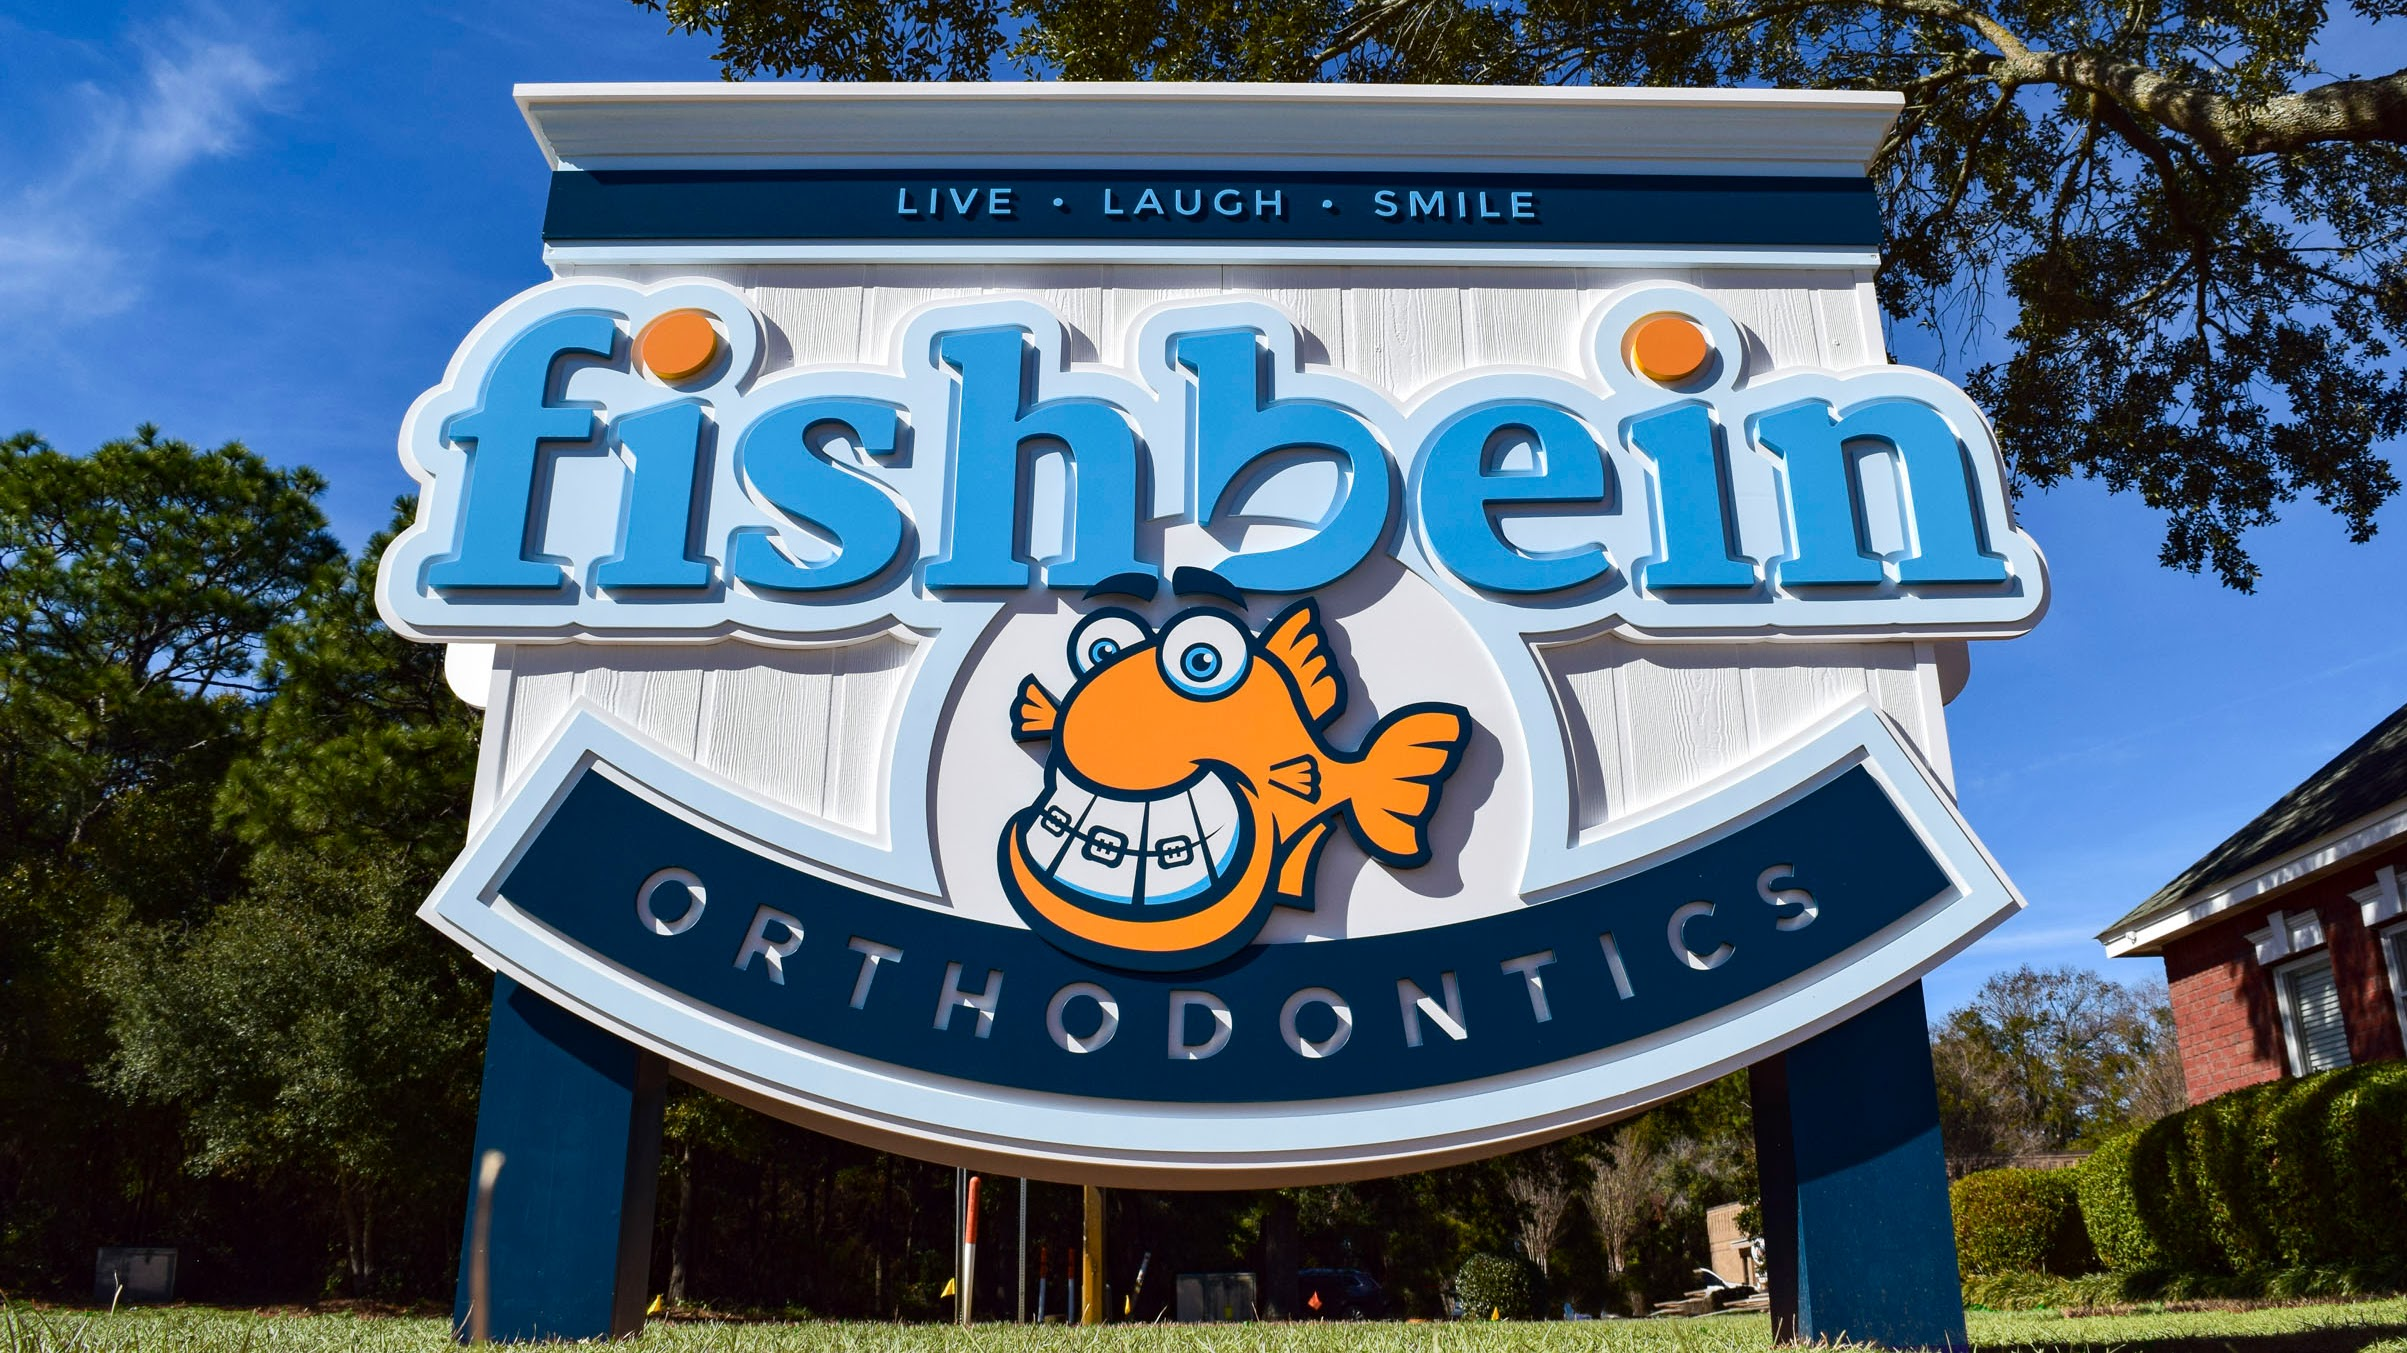 Architectural signage for Fishbein Orthodontics by Pensacola Sign